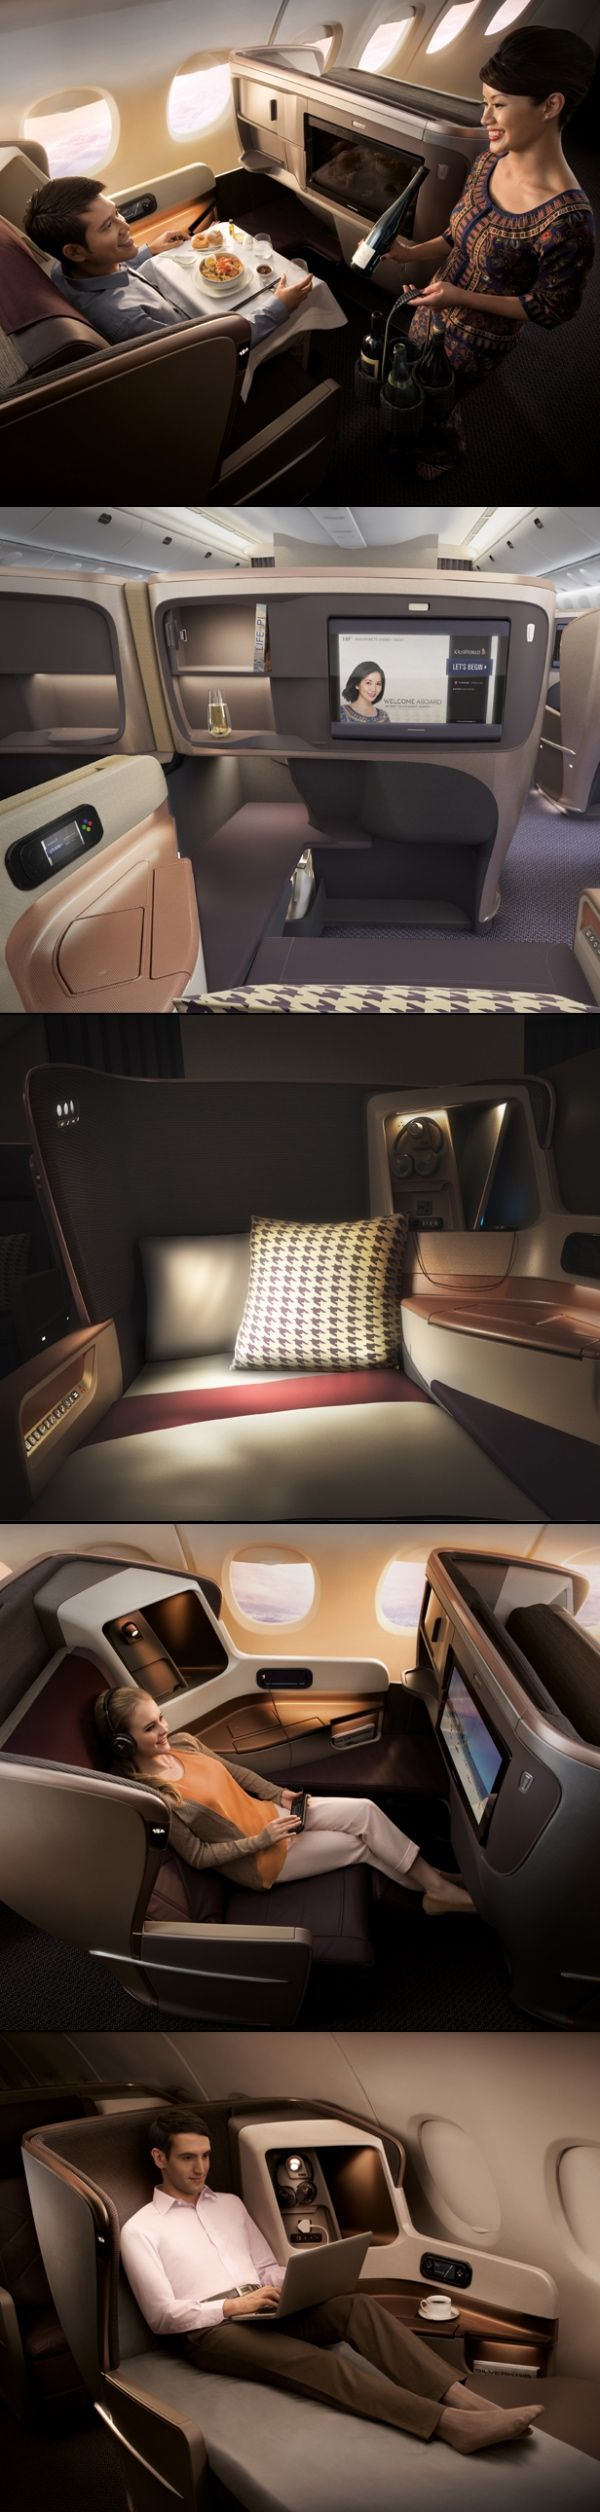 Singapore Airlines Next Generation B777-300ER Business Class Cabin & Seat The bar has been raised again for Business Class air travel, as Singapore Airlines and JPA Design launch their stunning Next Generation Business Class cabin, including a bespoke luxury Business Class seat